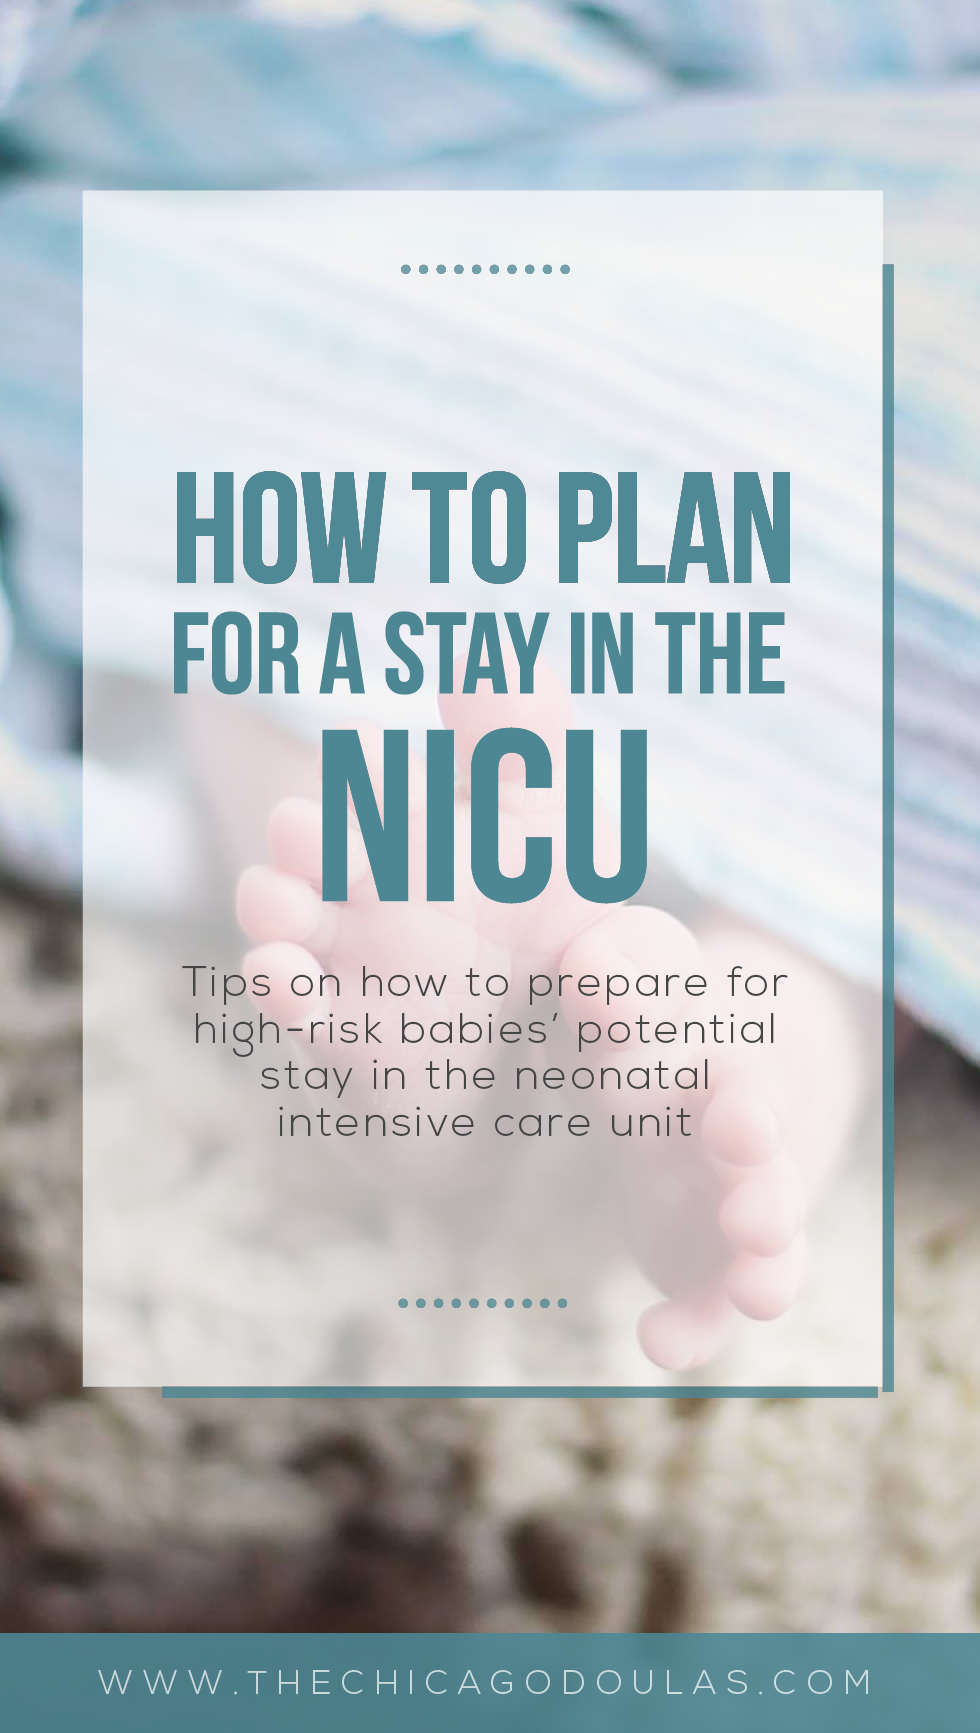 How to Prepare for a NICU stay - What to know about the NICU - The Chicago Doulas